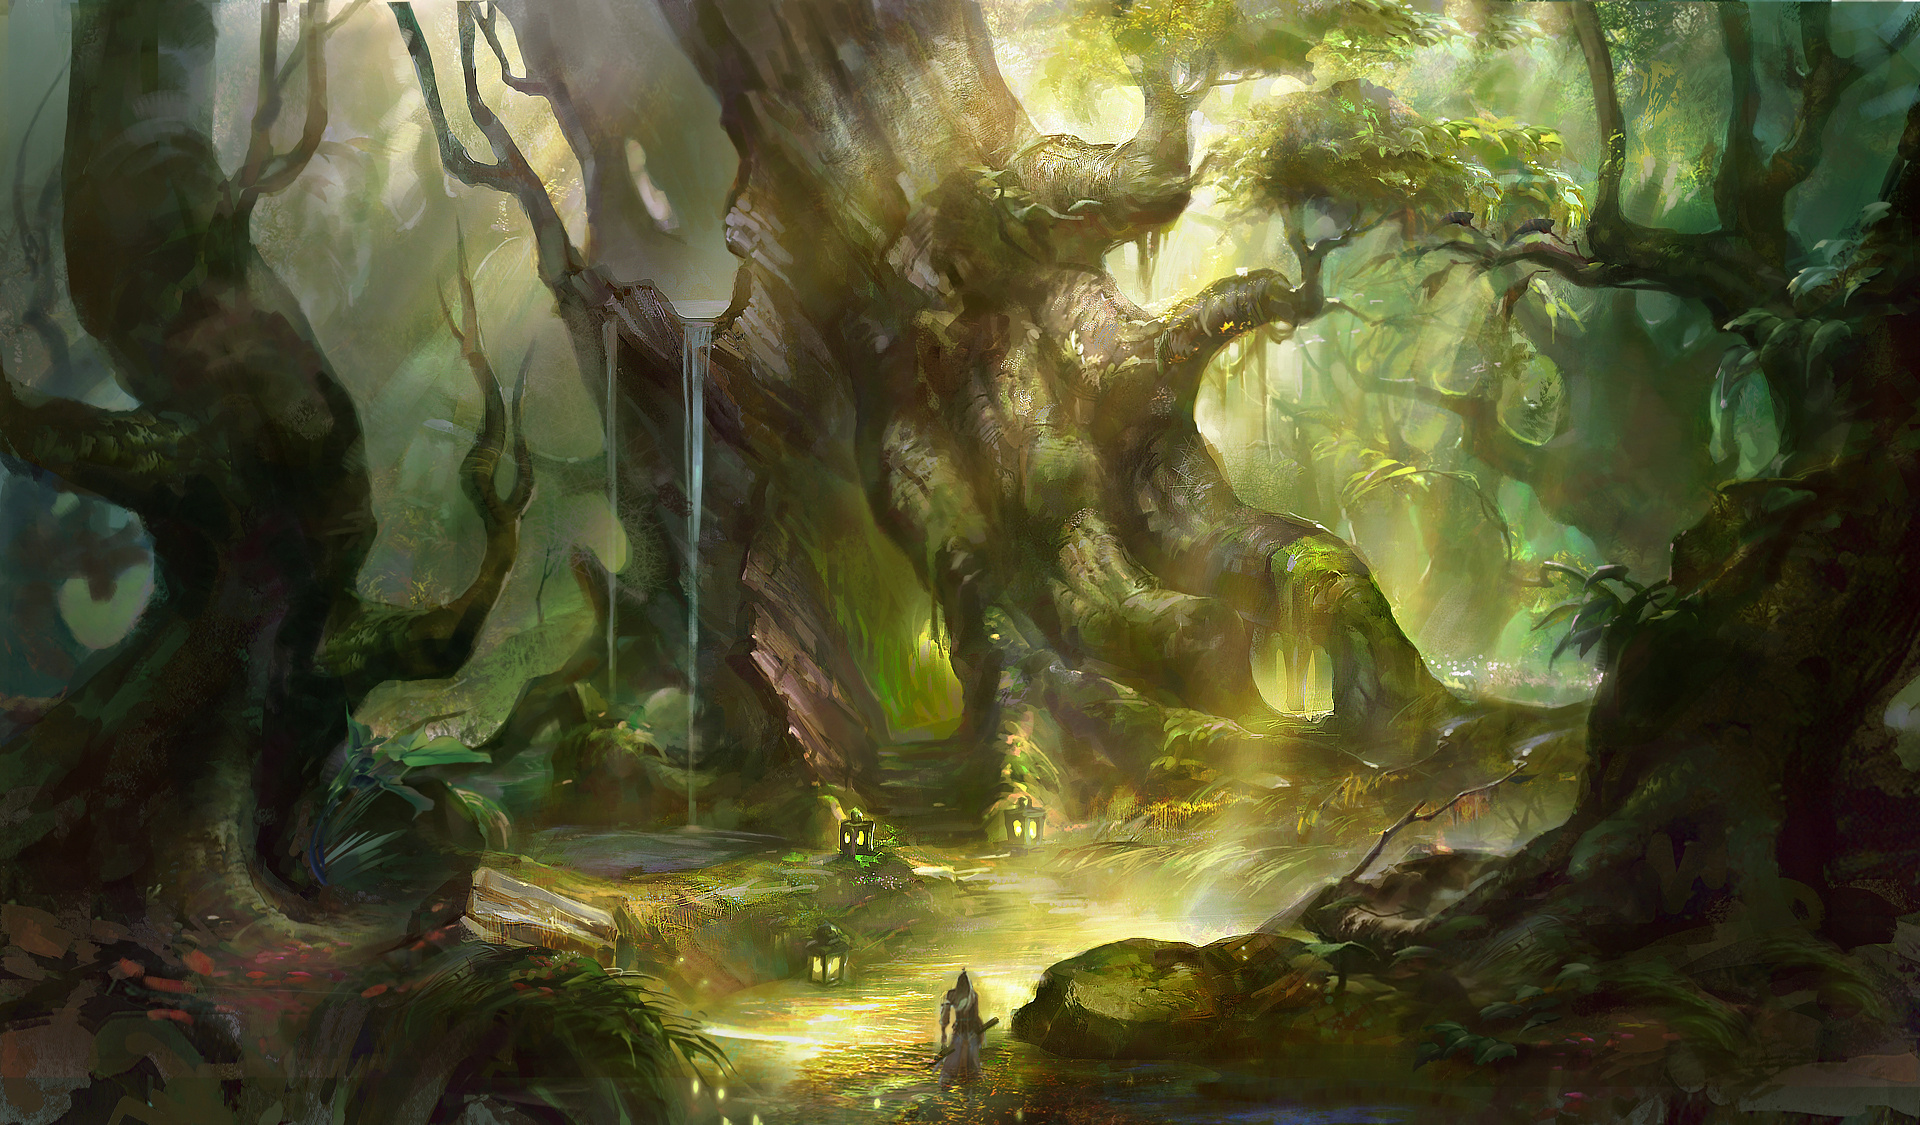 150 Adventure HD Wallpapers | Background Images ... Anime Forest Clearing Background